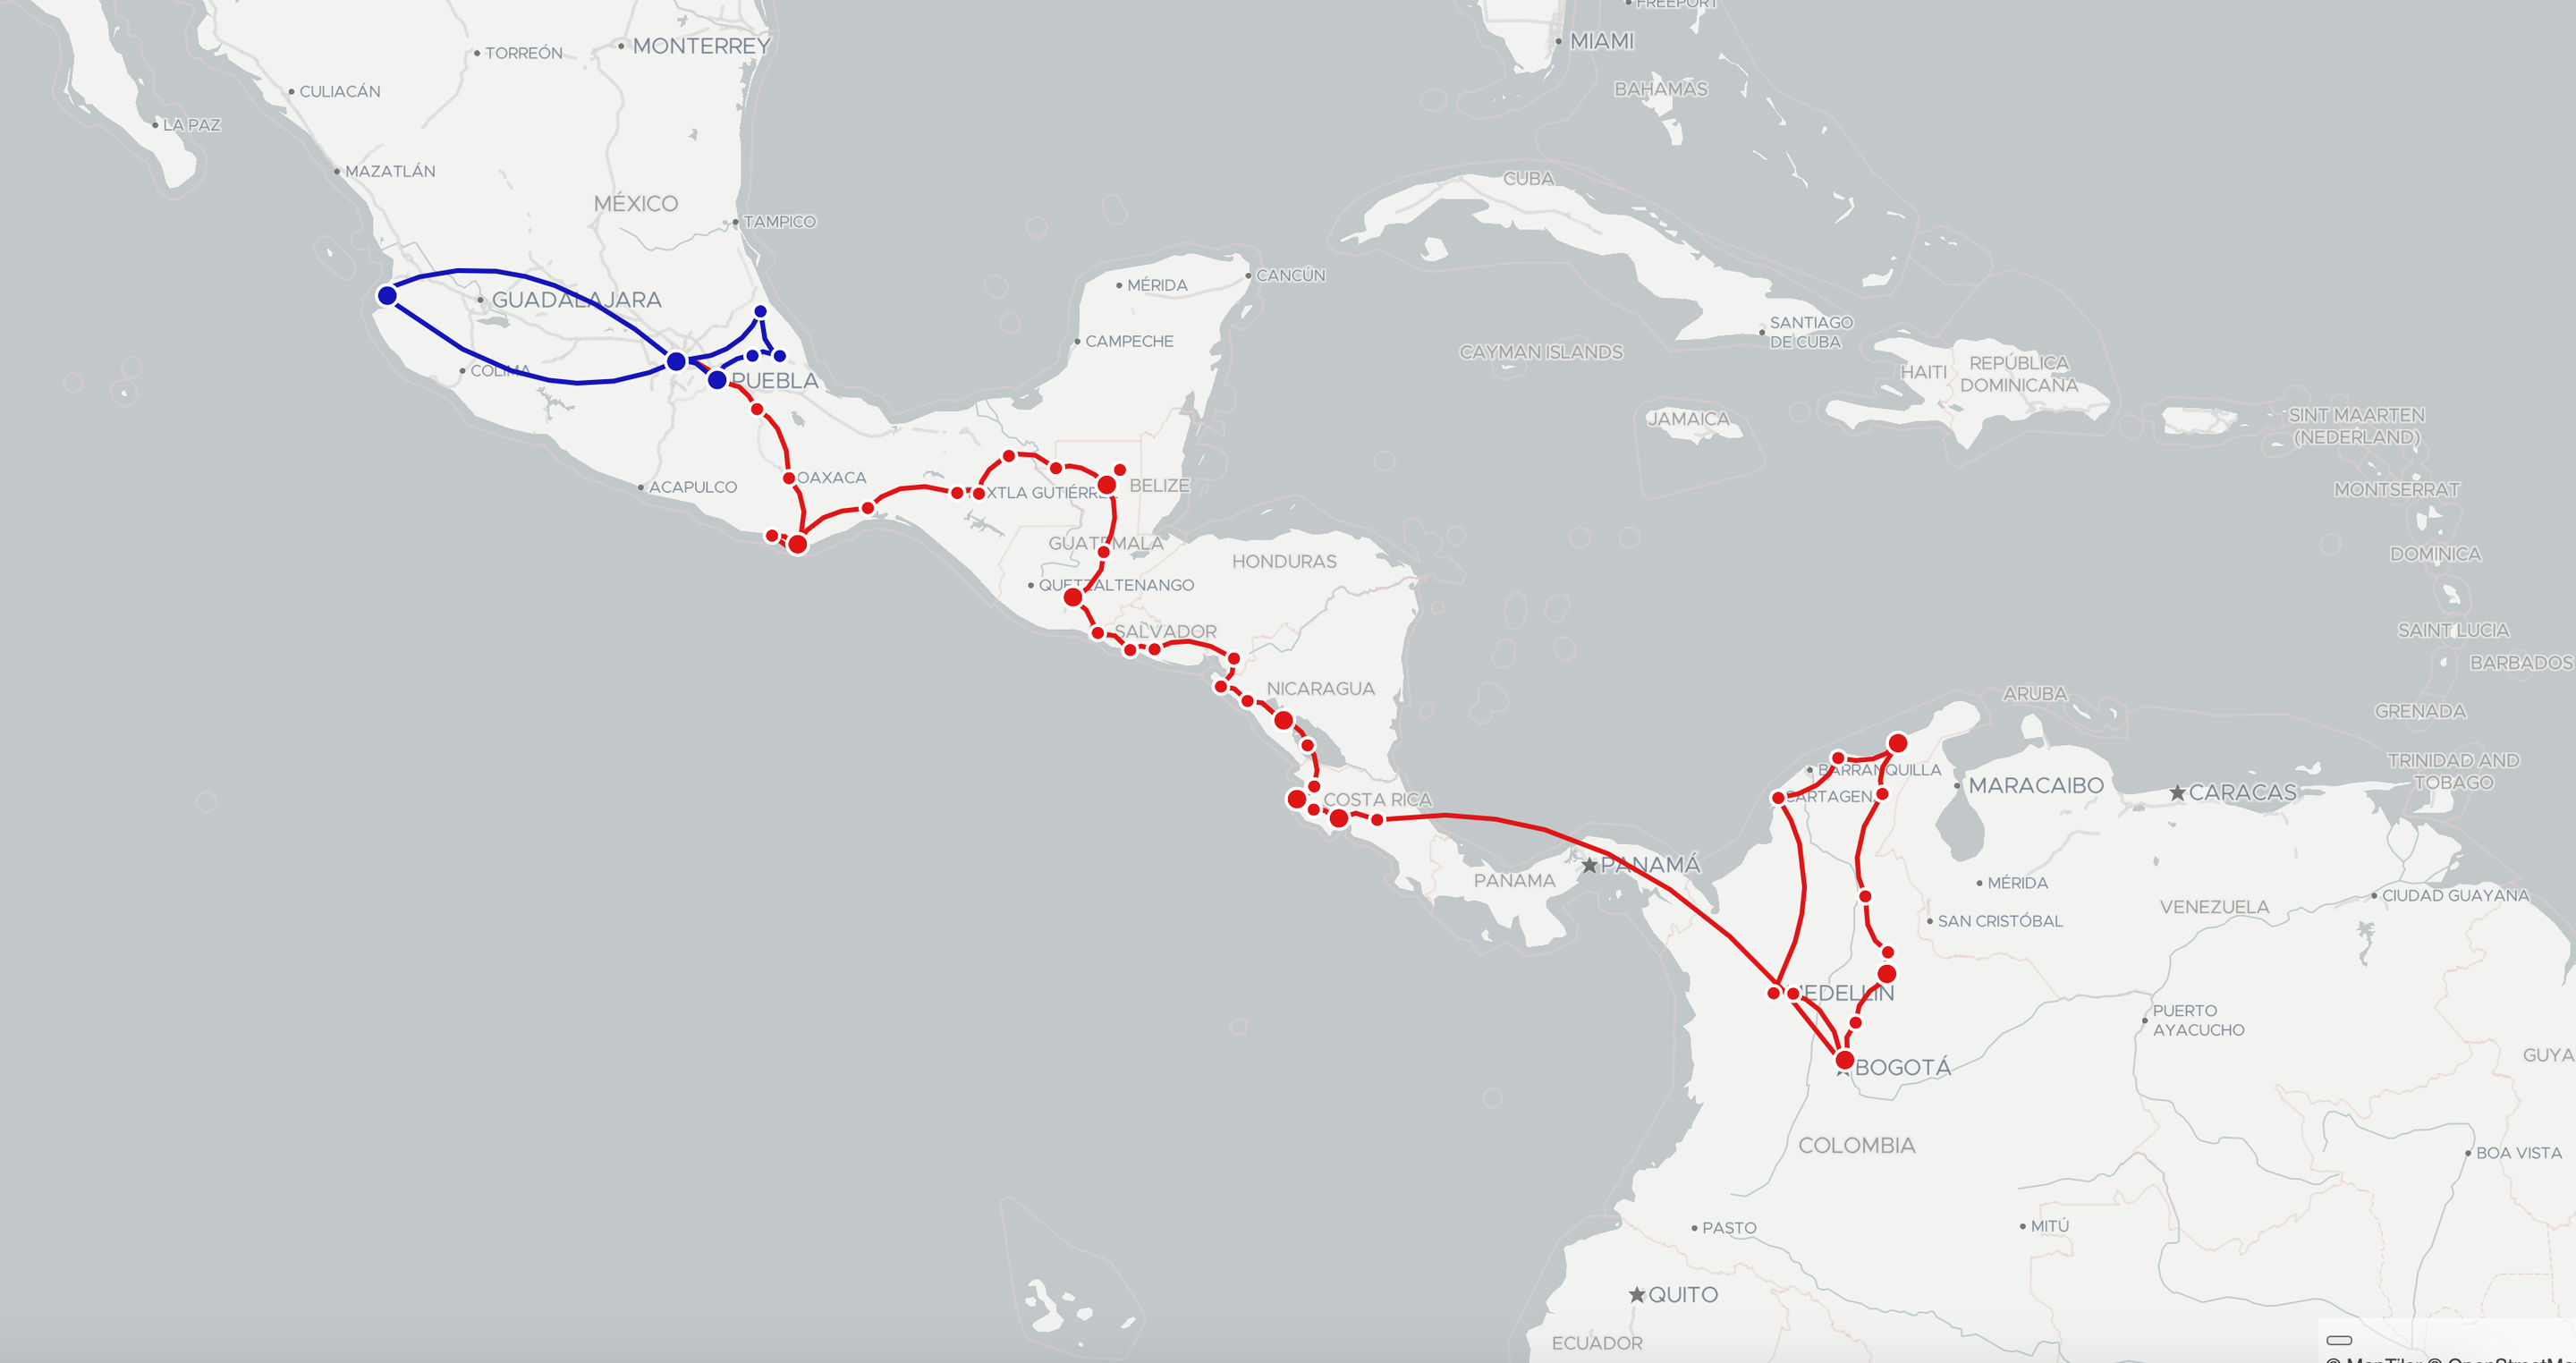 latin america by bicycle route map